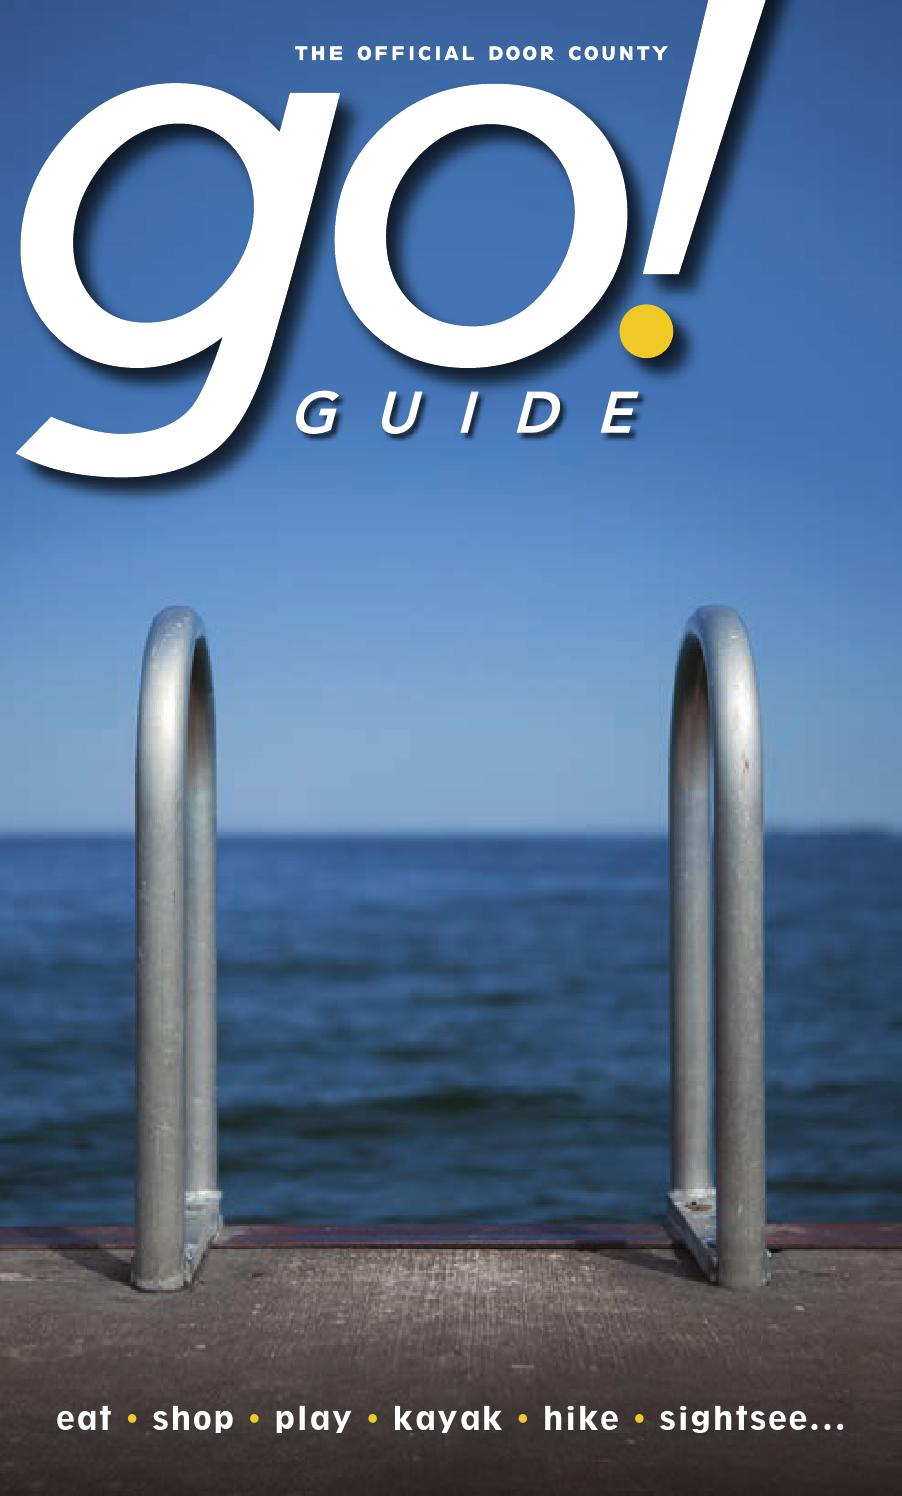 Door County Go Guide 2016 By Publishing Issuu For Diagram Wiring Opener Pv 612